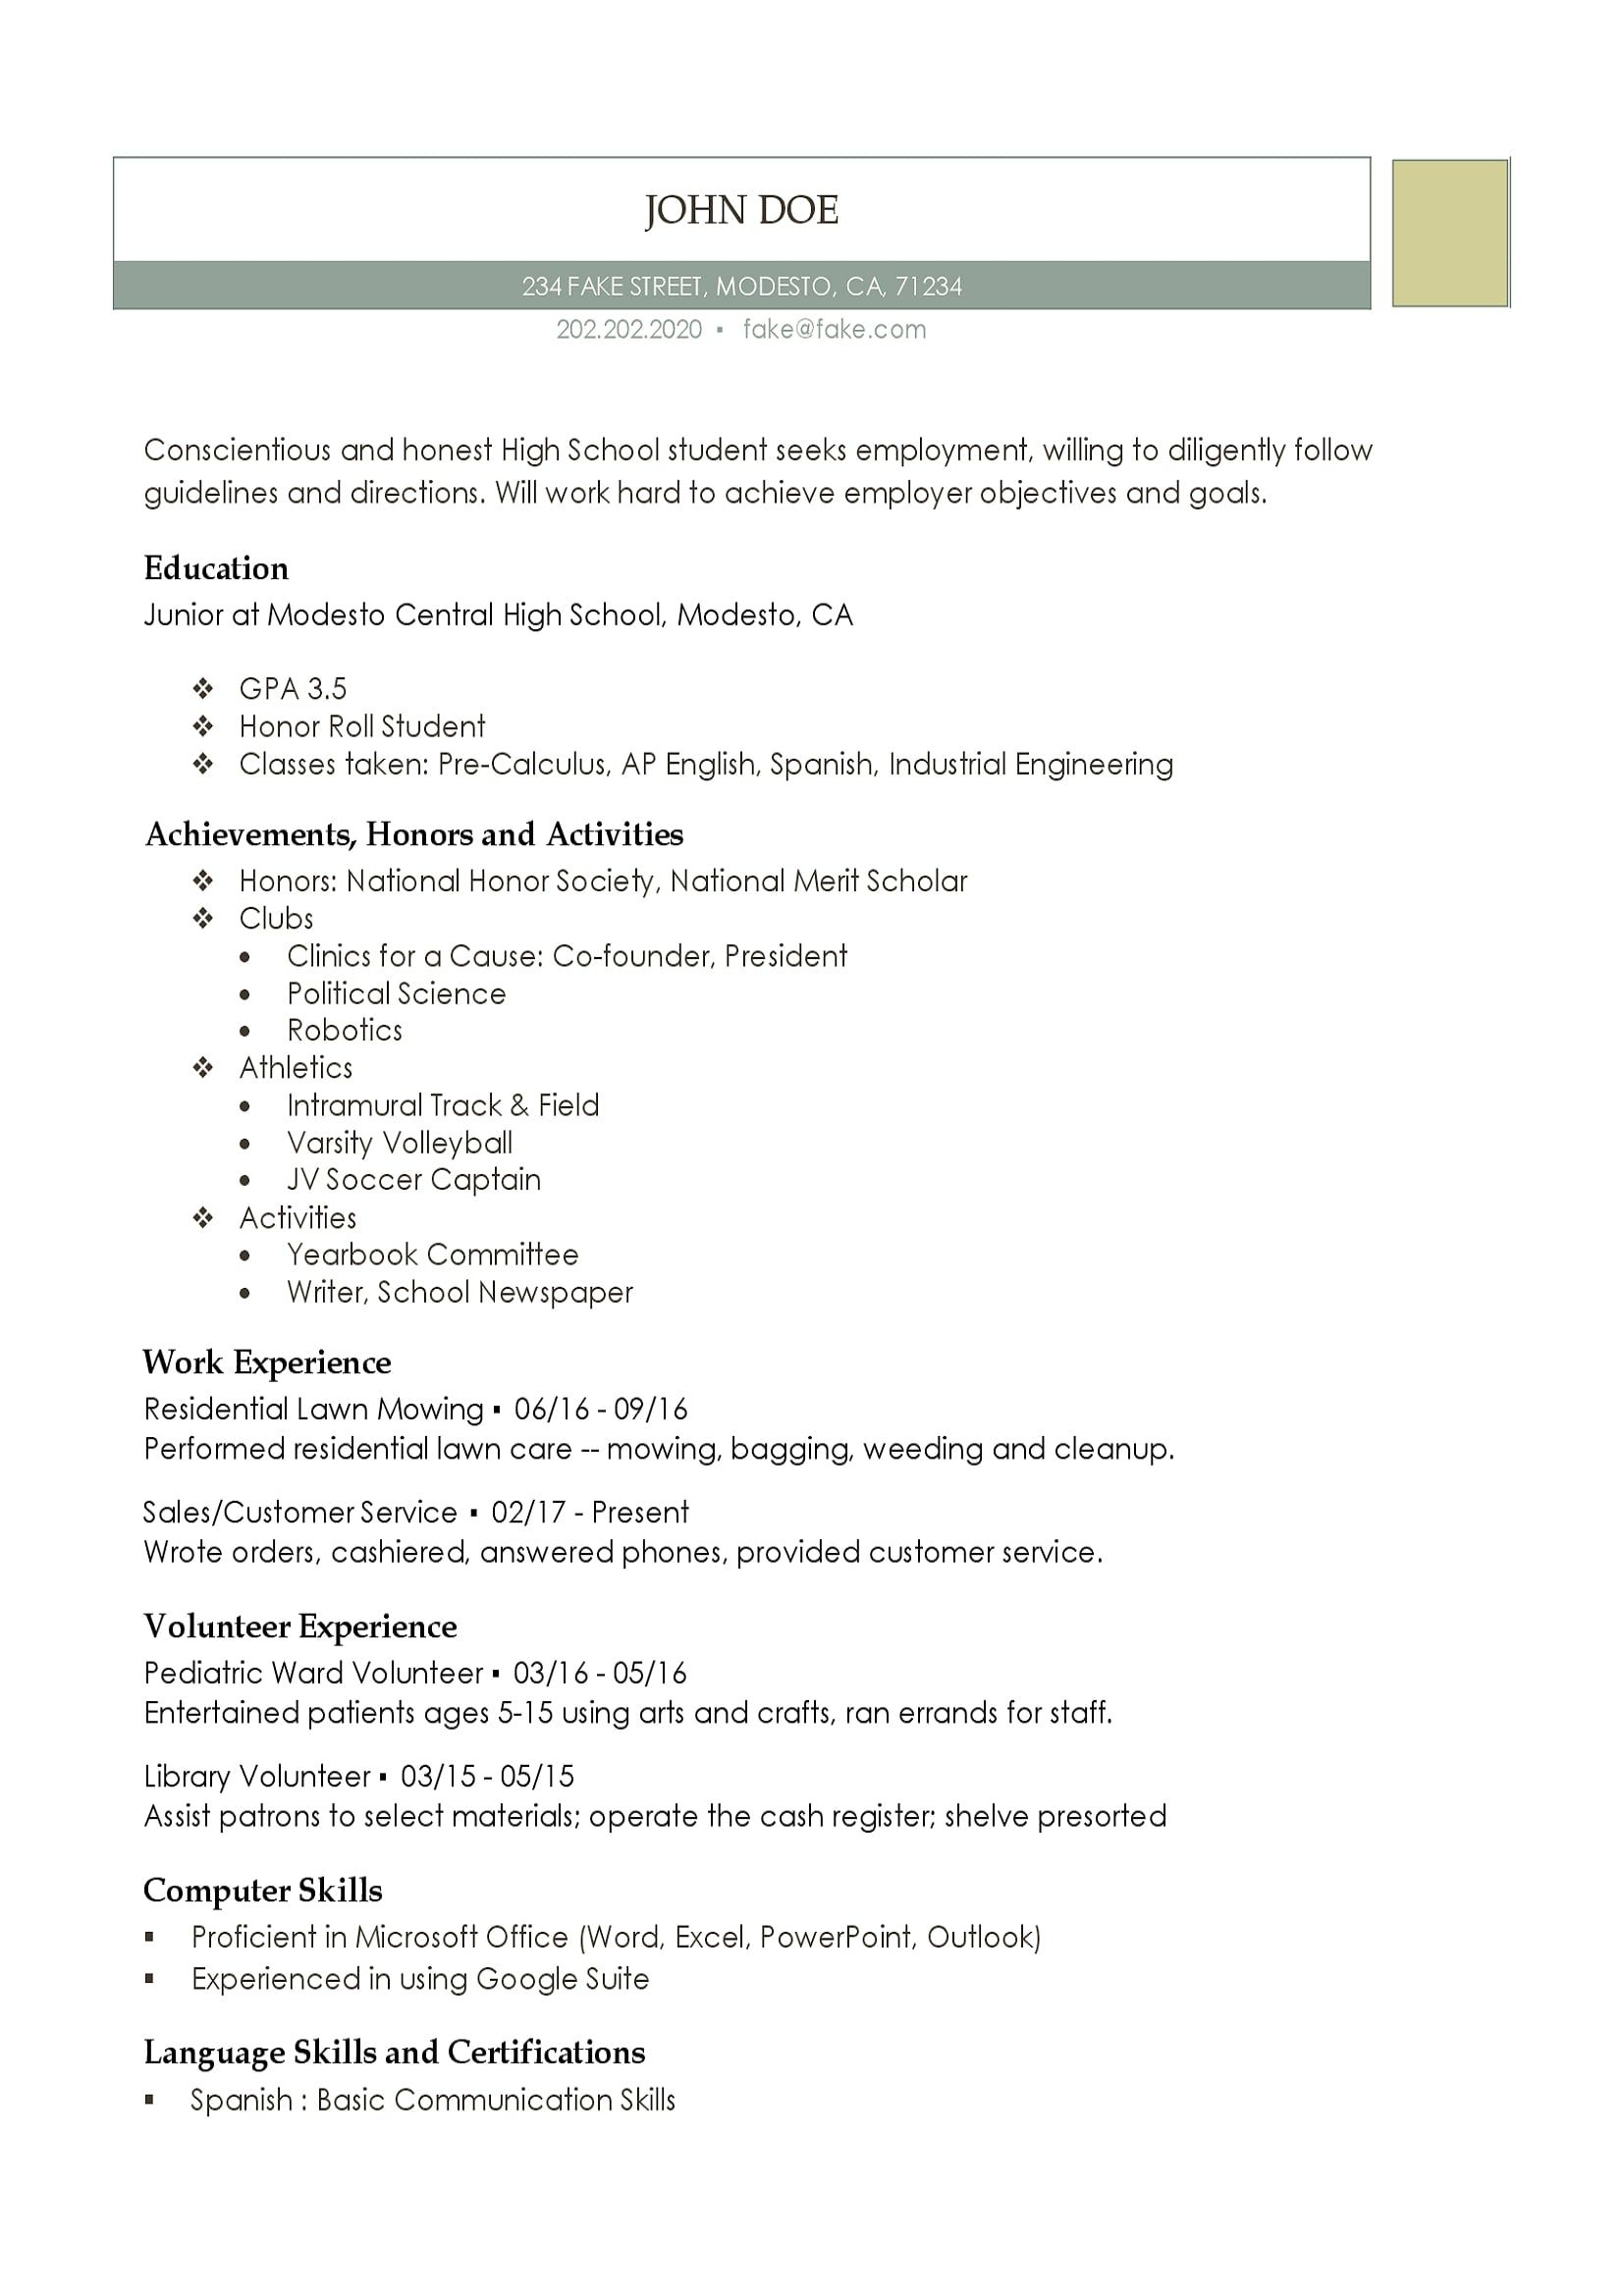 004 Staggering Resume Template High School Student Example  Students Easy For Curriculum Vitae Format Pdf Free DownloadableFull